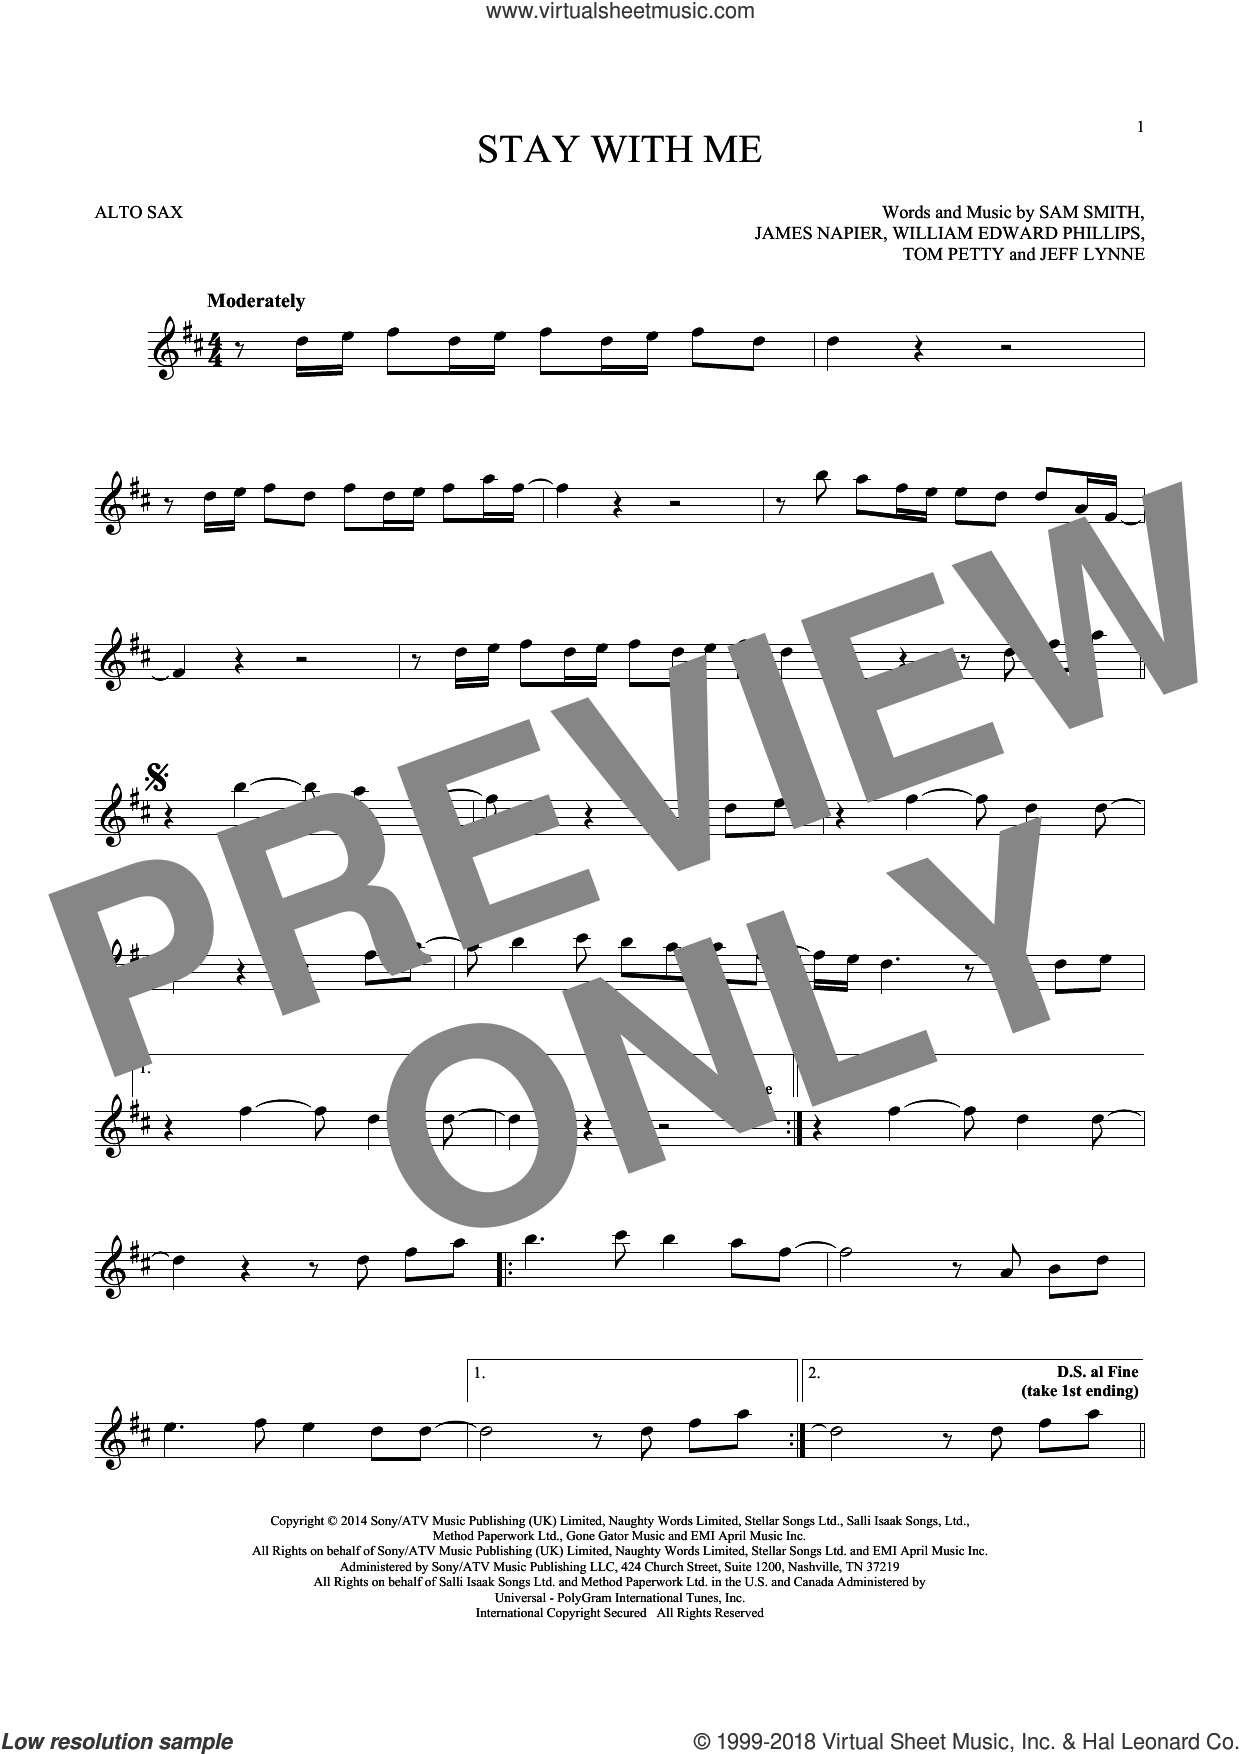 Stay With Me sheet music for alto saxophone solo ( Sax) by Sam Smith, Jeff Lynne and Tom Petty, intermediate alto saxophone ( Sax). Score Image Preview.